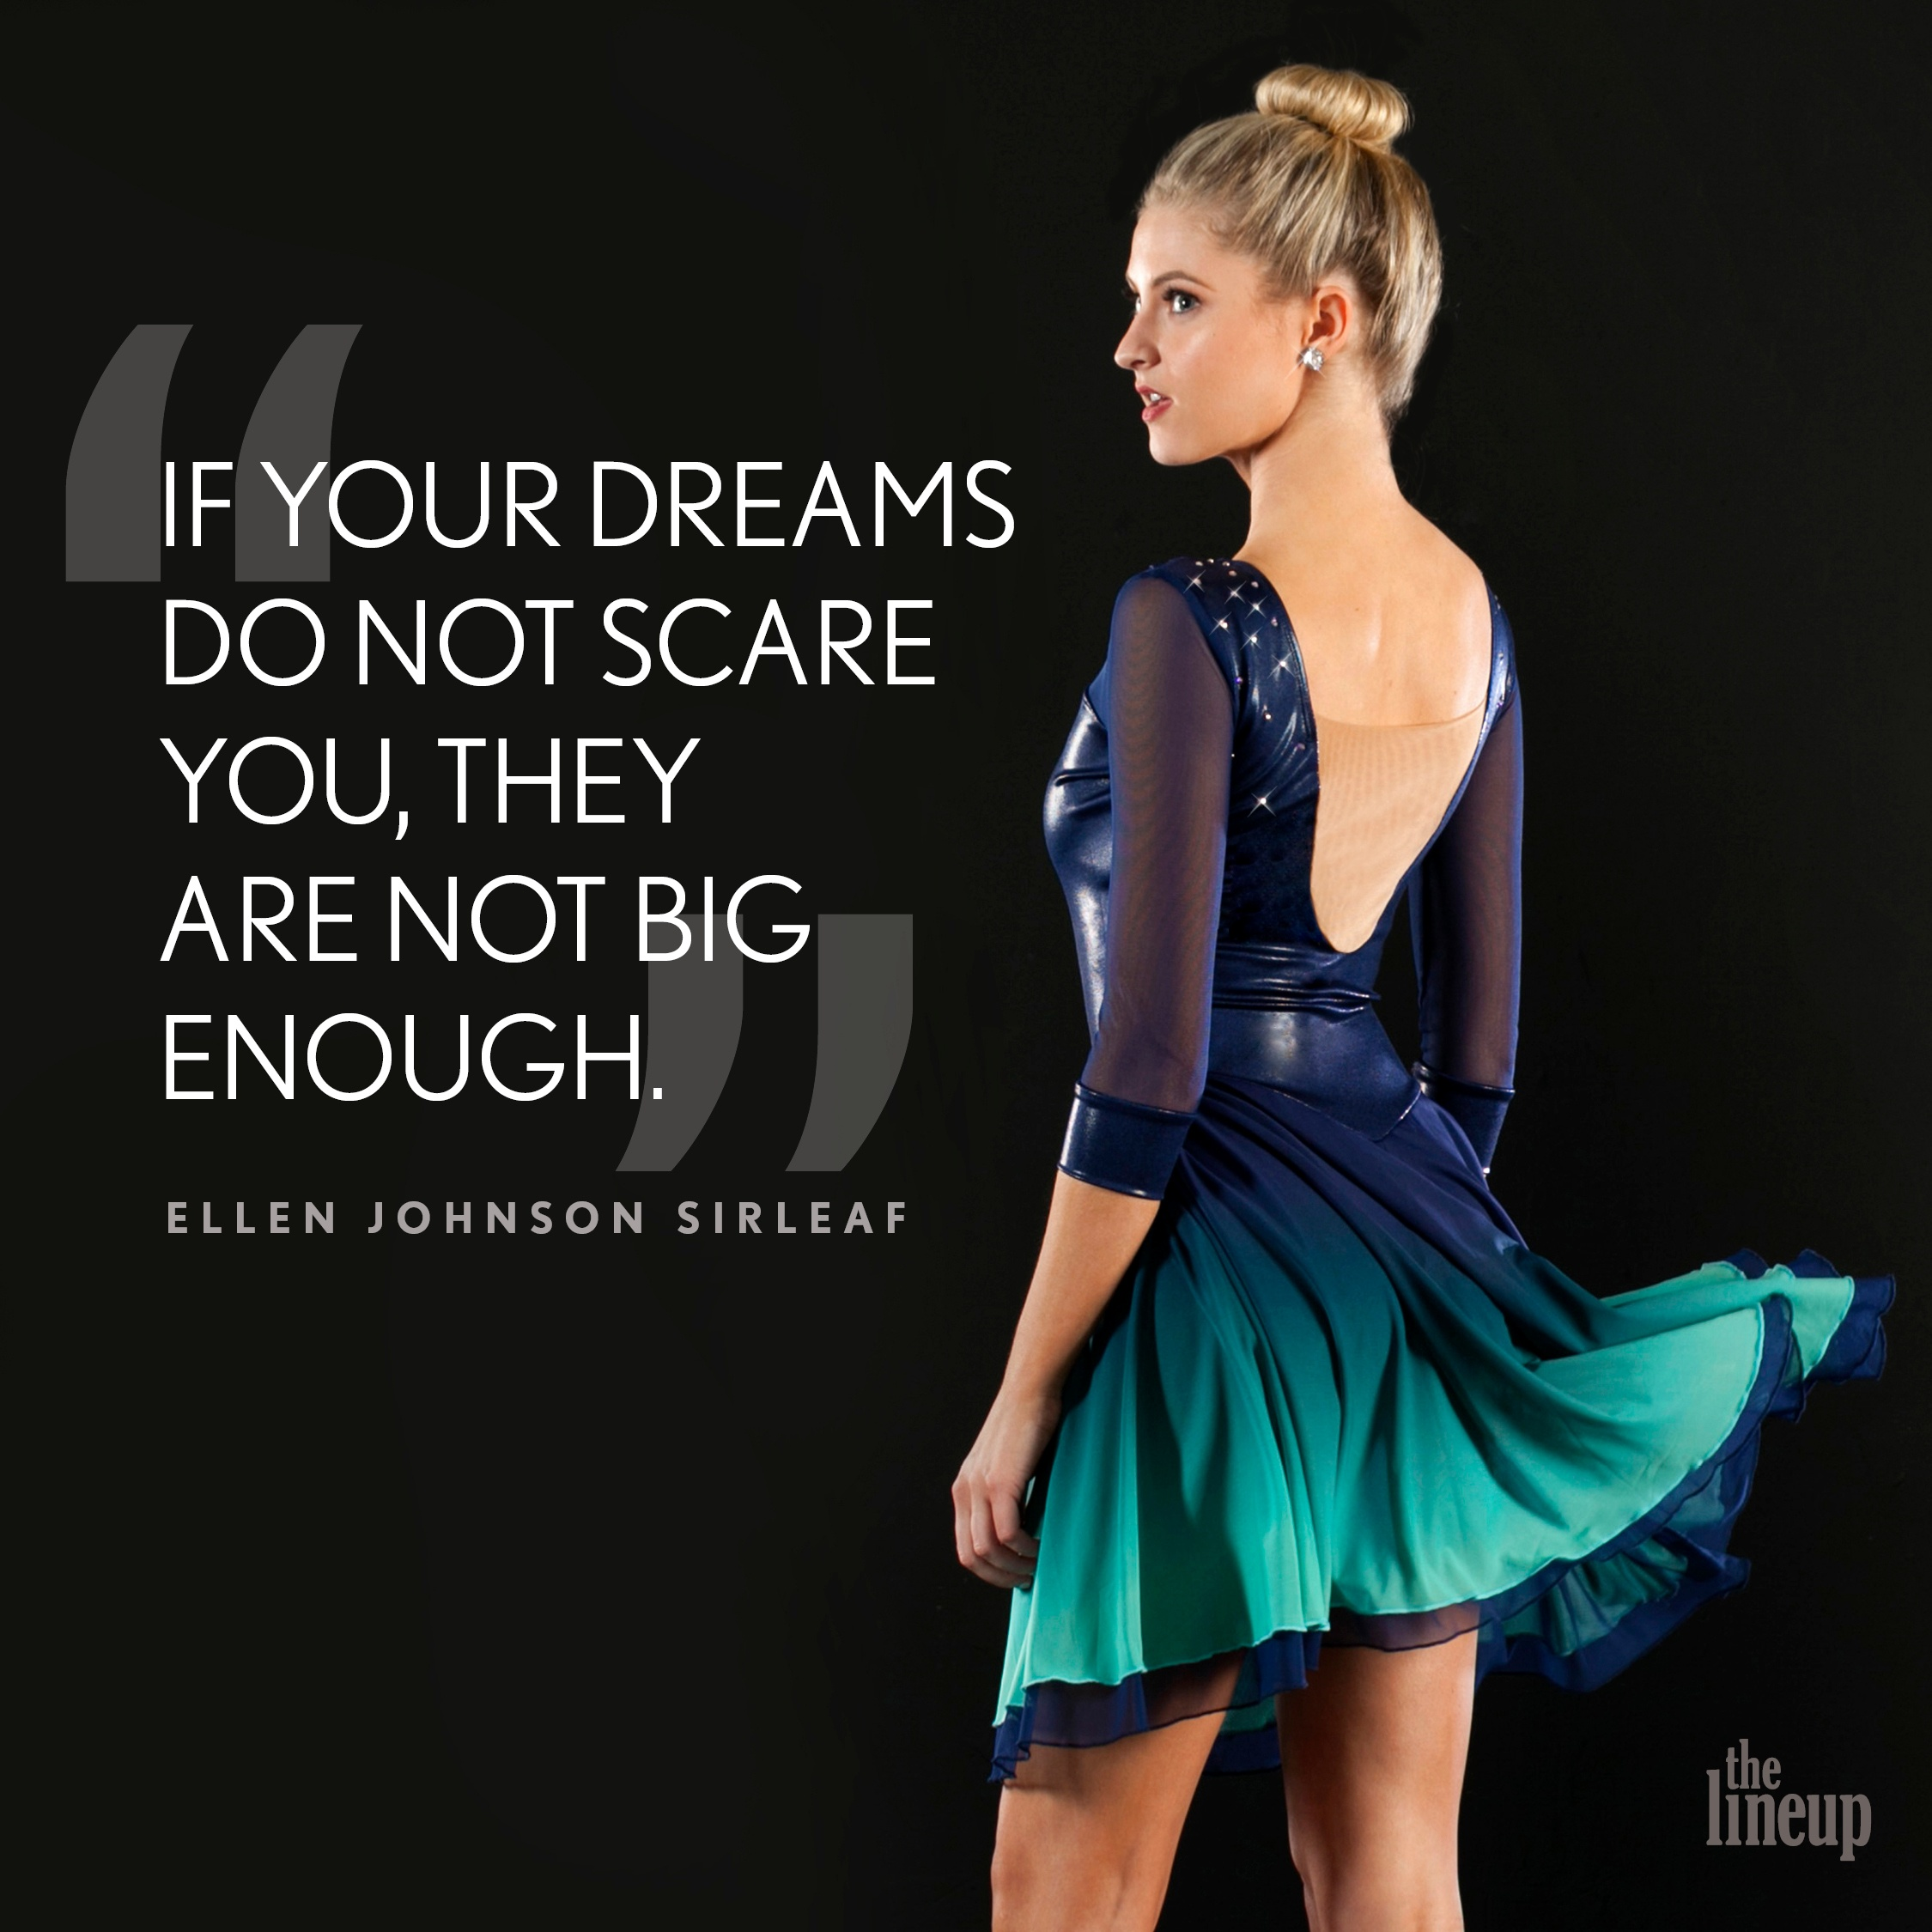 """""""If your dreams do not scare you, they are not big enough."""" - Ellen Johnson Sirleaf Motivational Quotes for Dancers"""